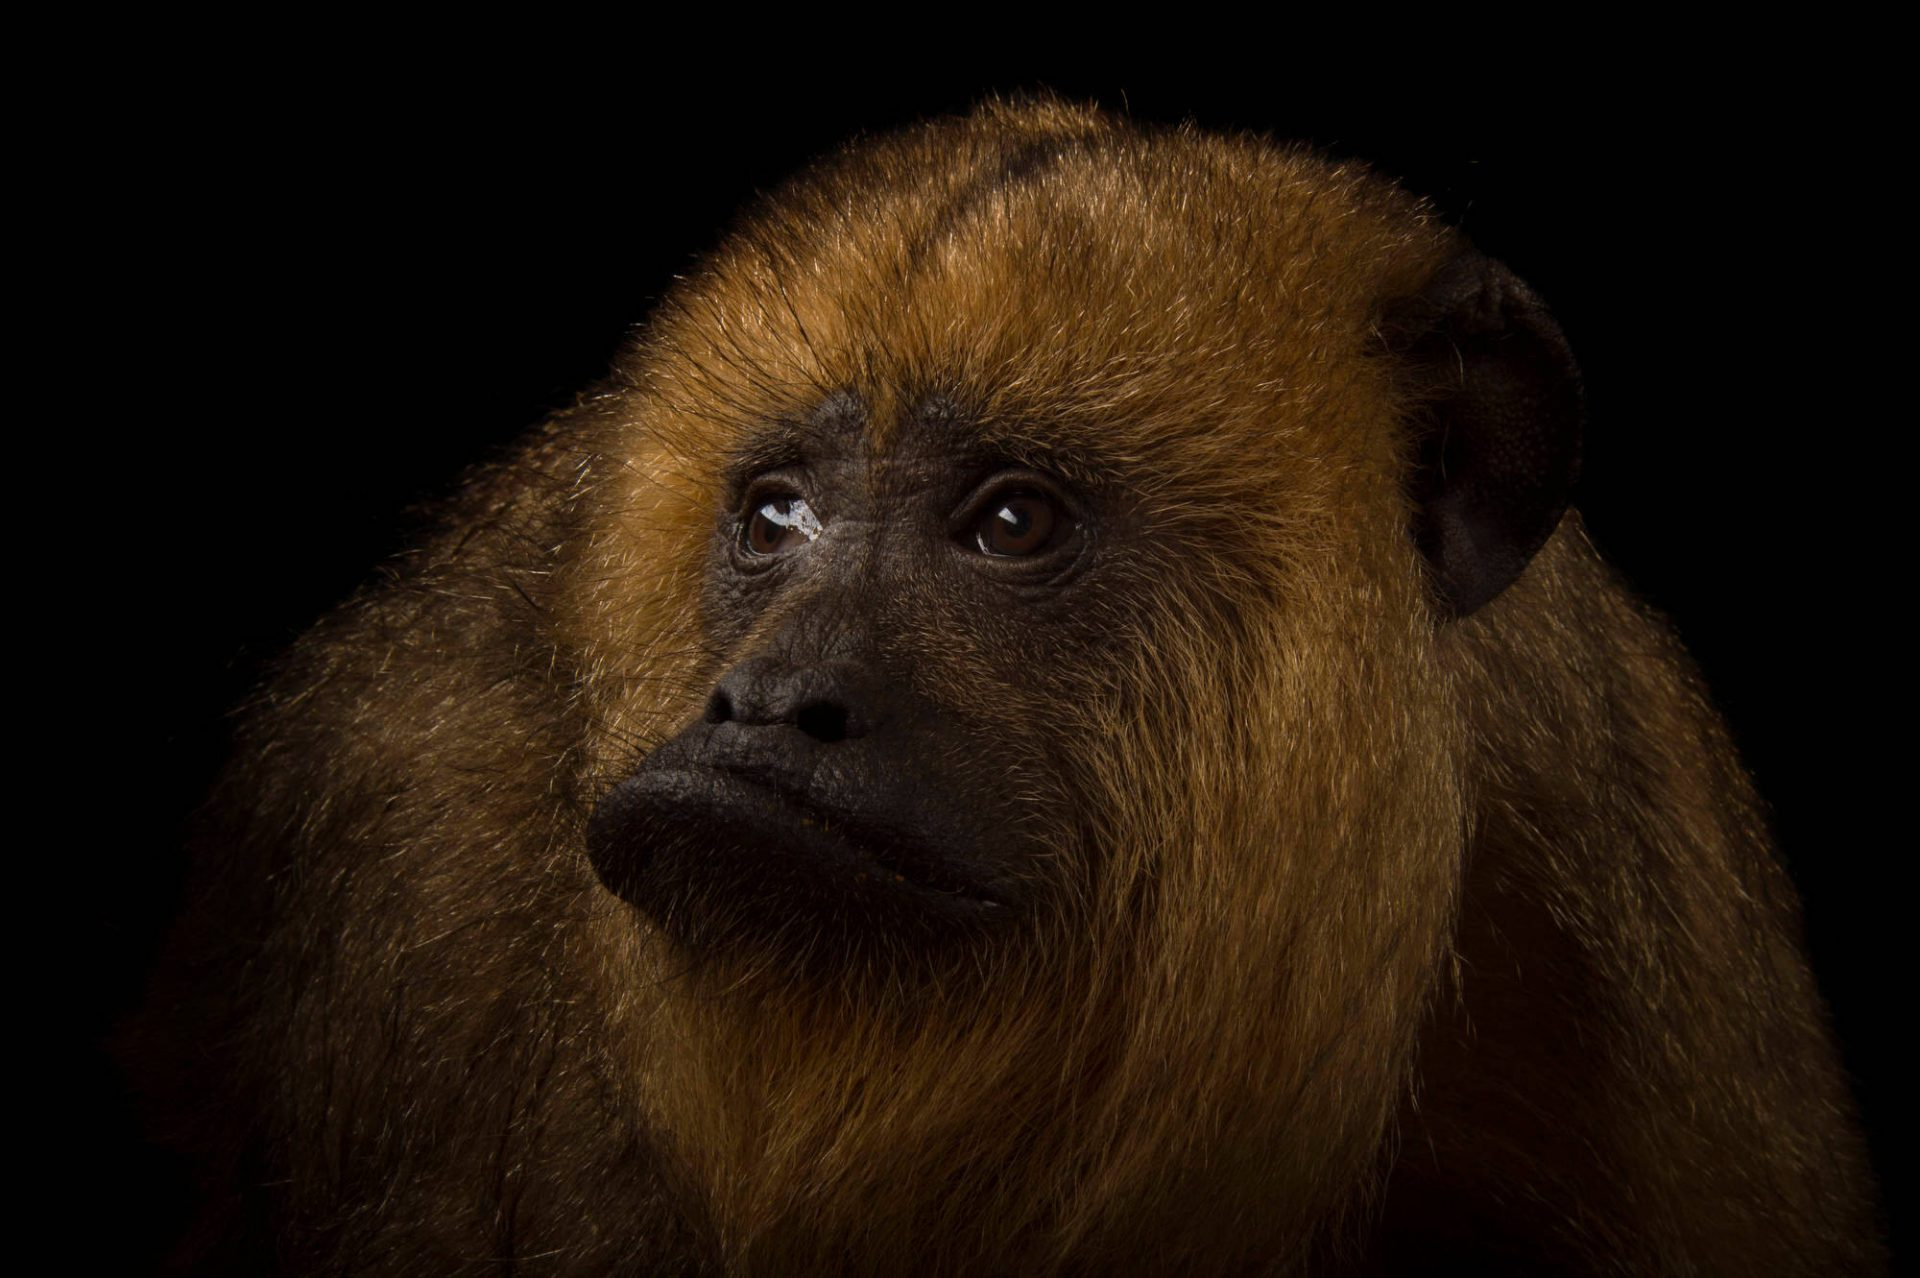 A female Black howler monkey (Alouatta caraya) at the Henry Doorly Zoo and Aquarium.